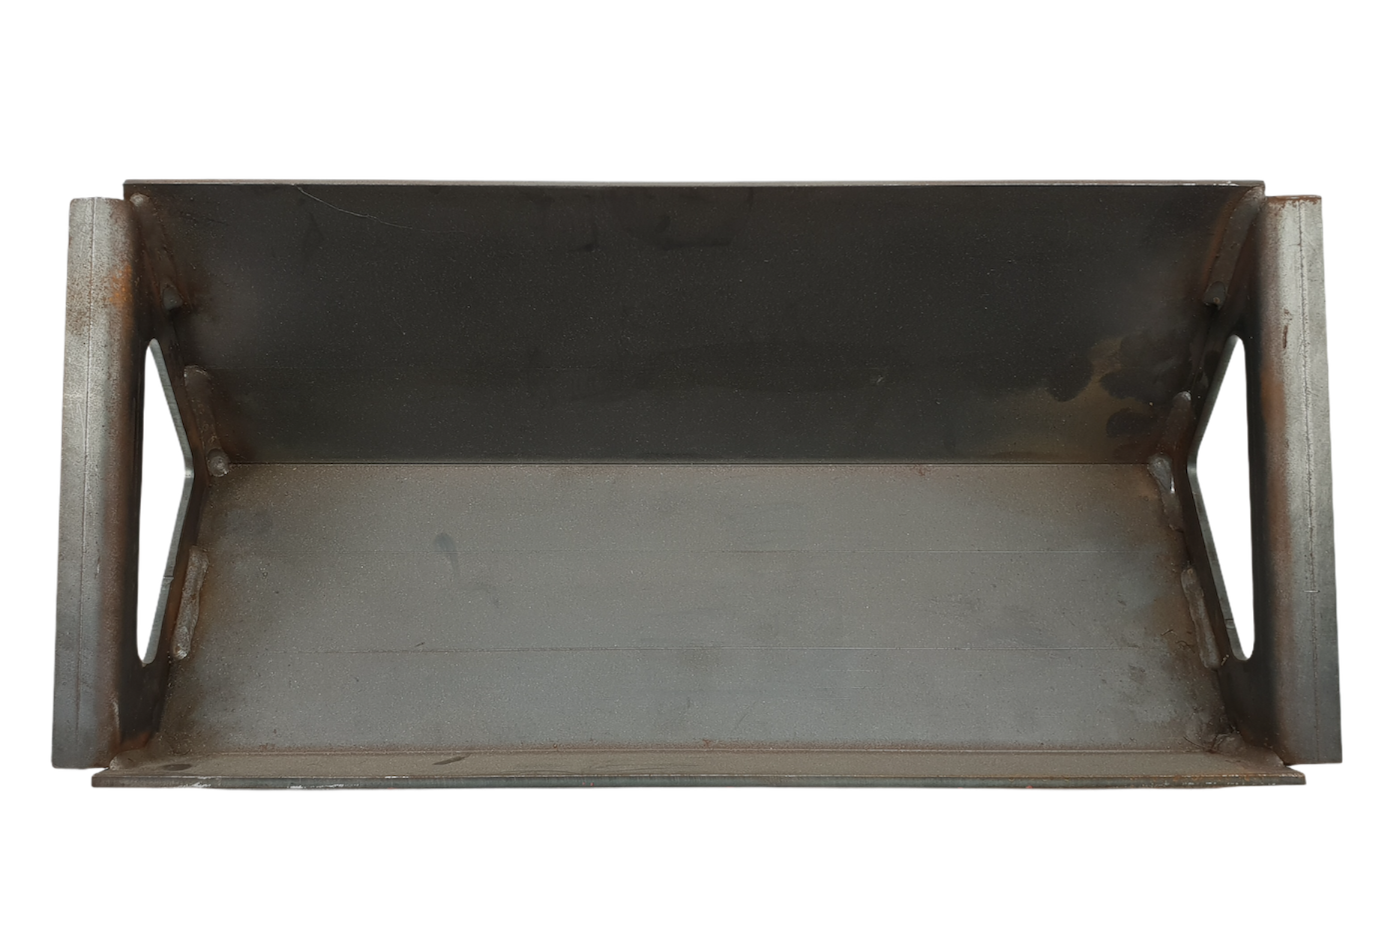 A recouping baffle plate suitable for an Hunter Herald 14 CEVII stove.